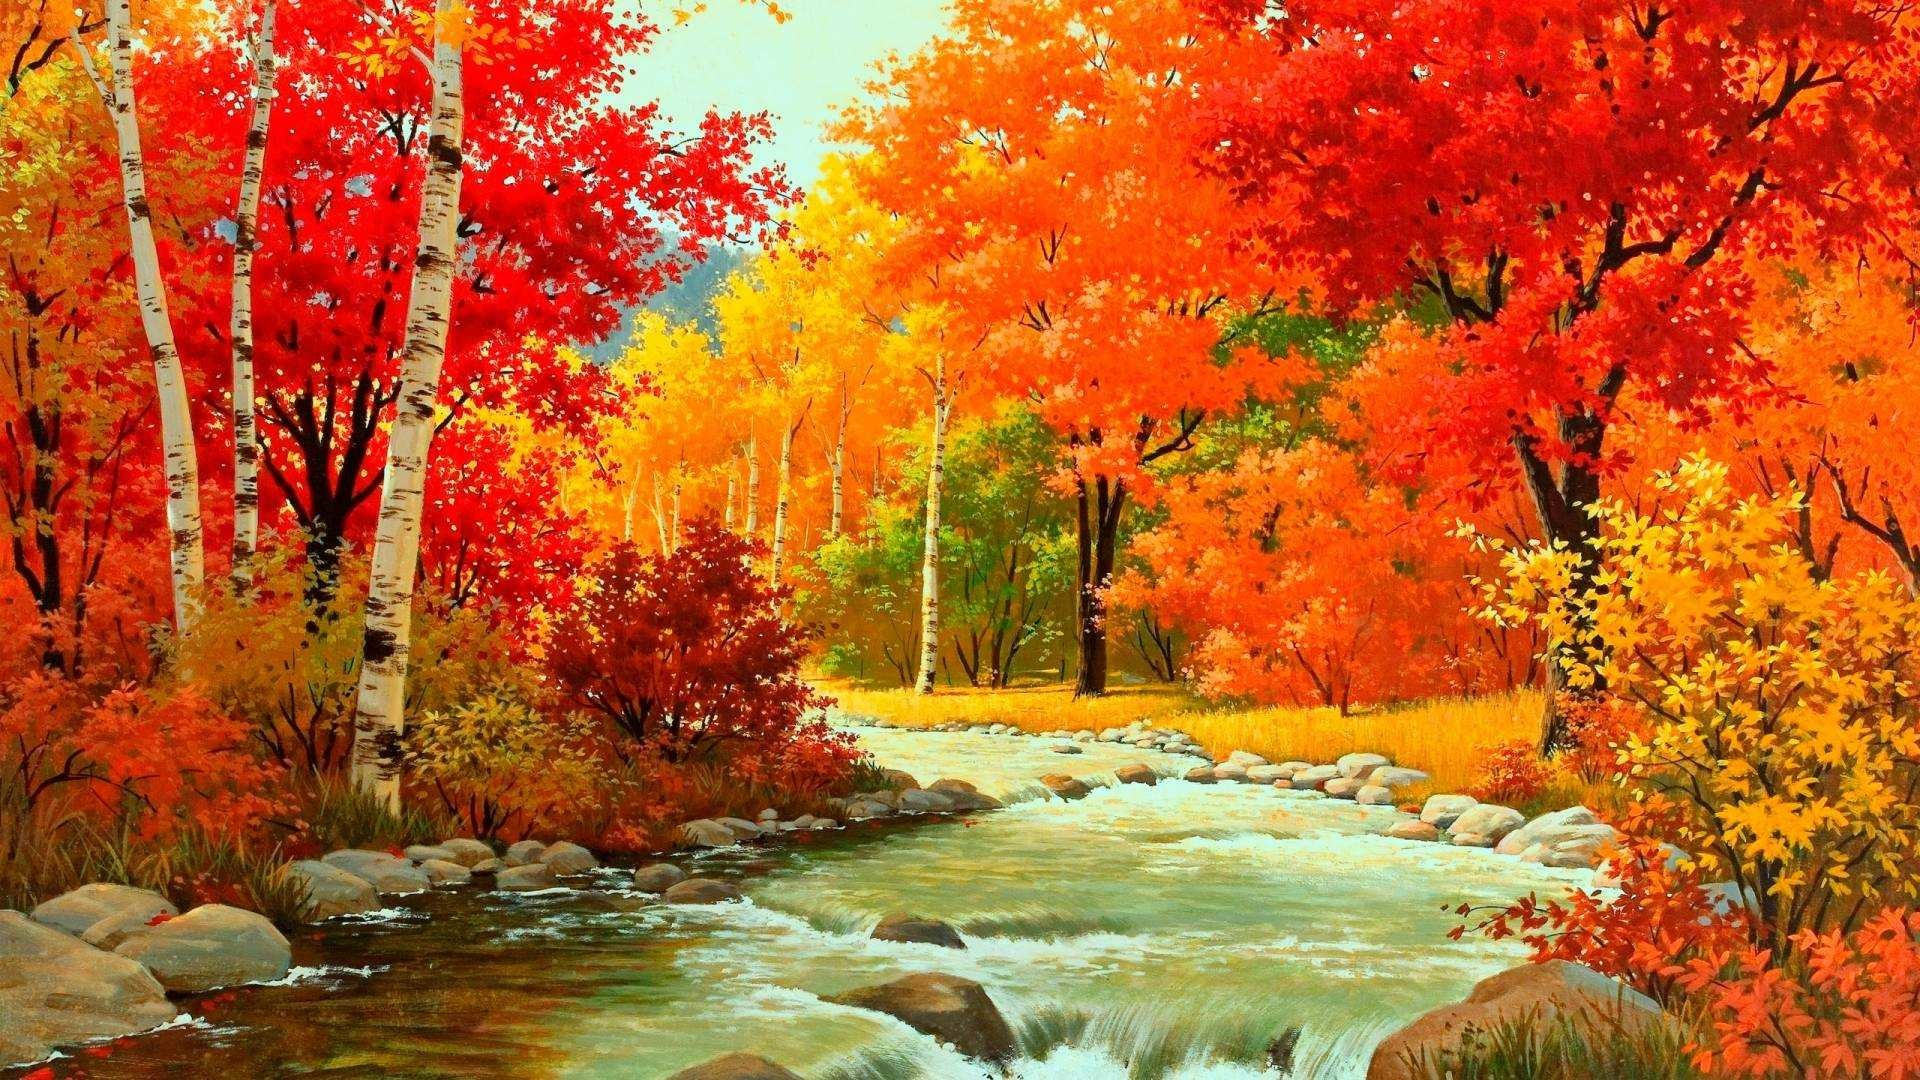 Autumn Widescreen Wallpaper Posted By Ryan Tremblay